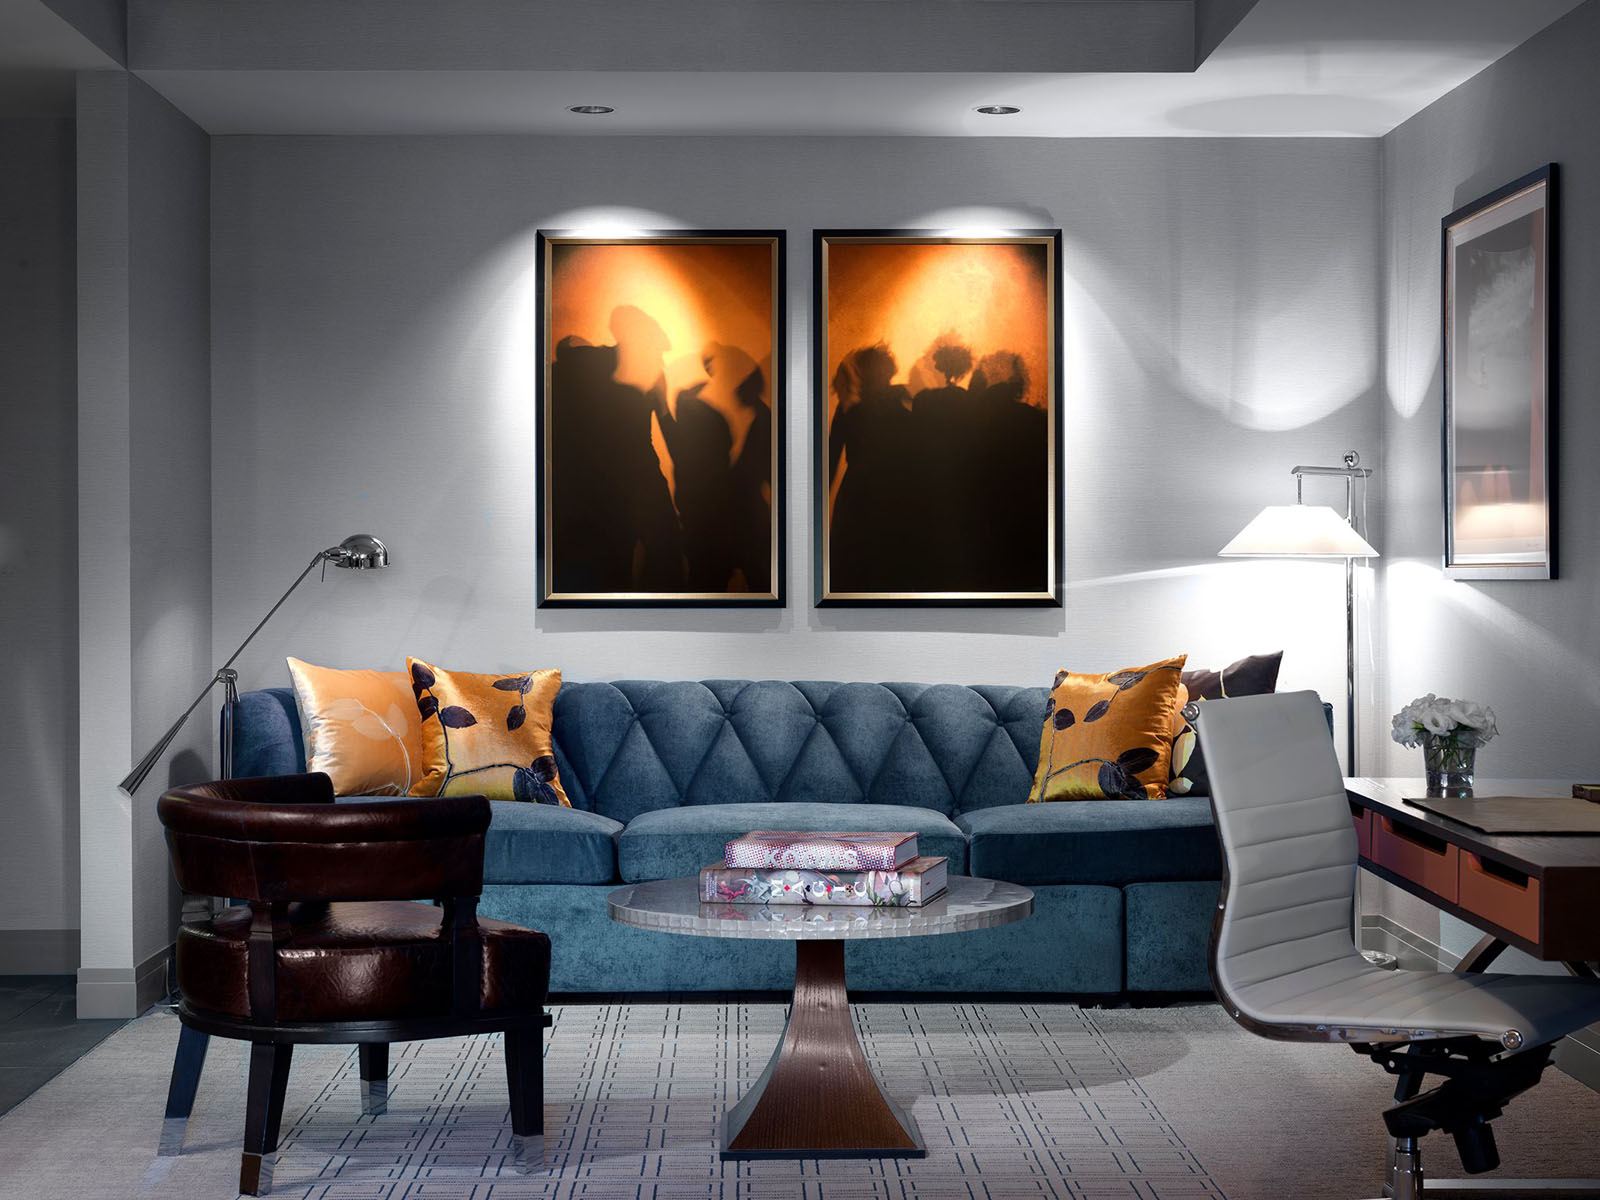 Swanky Hotel Interior Design: The Cosmopolitan of Las Vegas ...